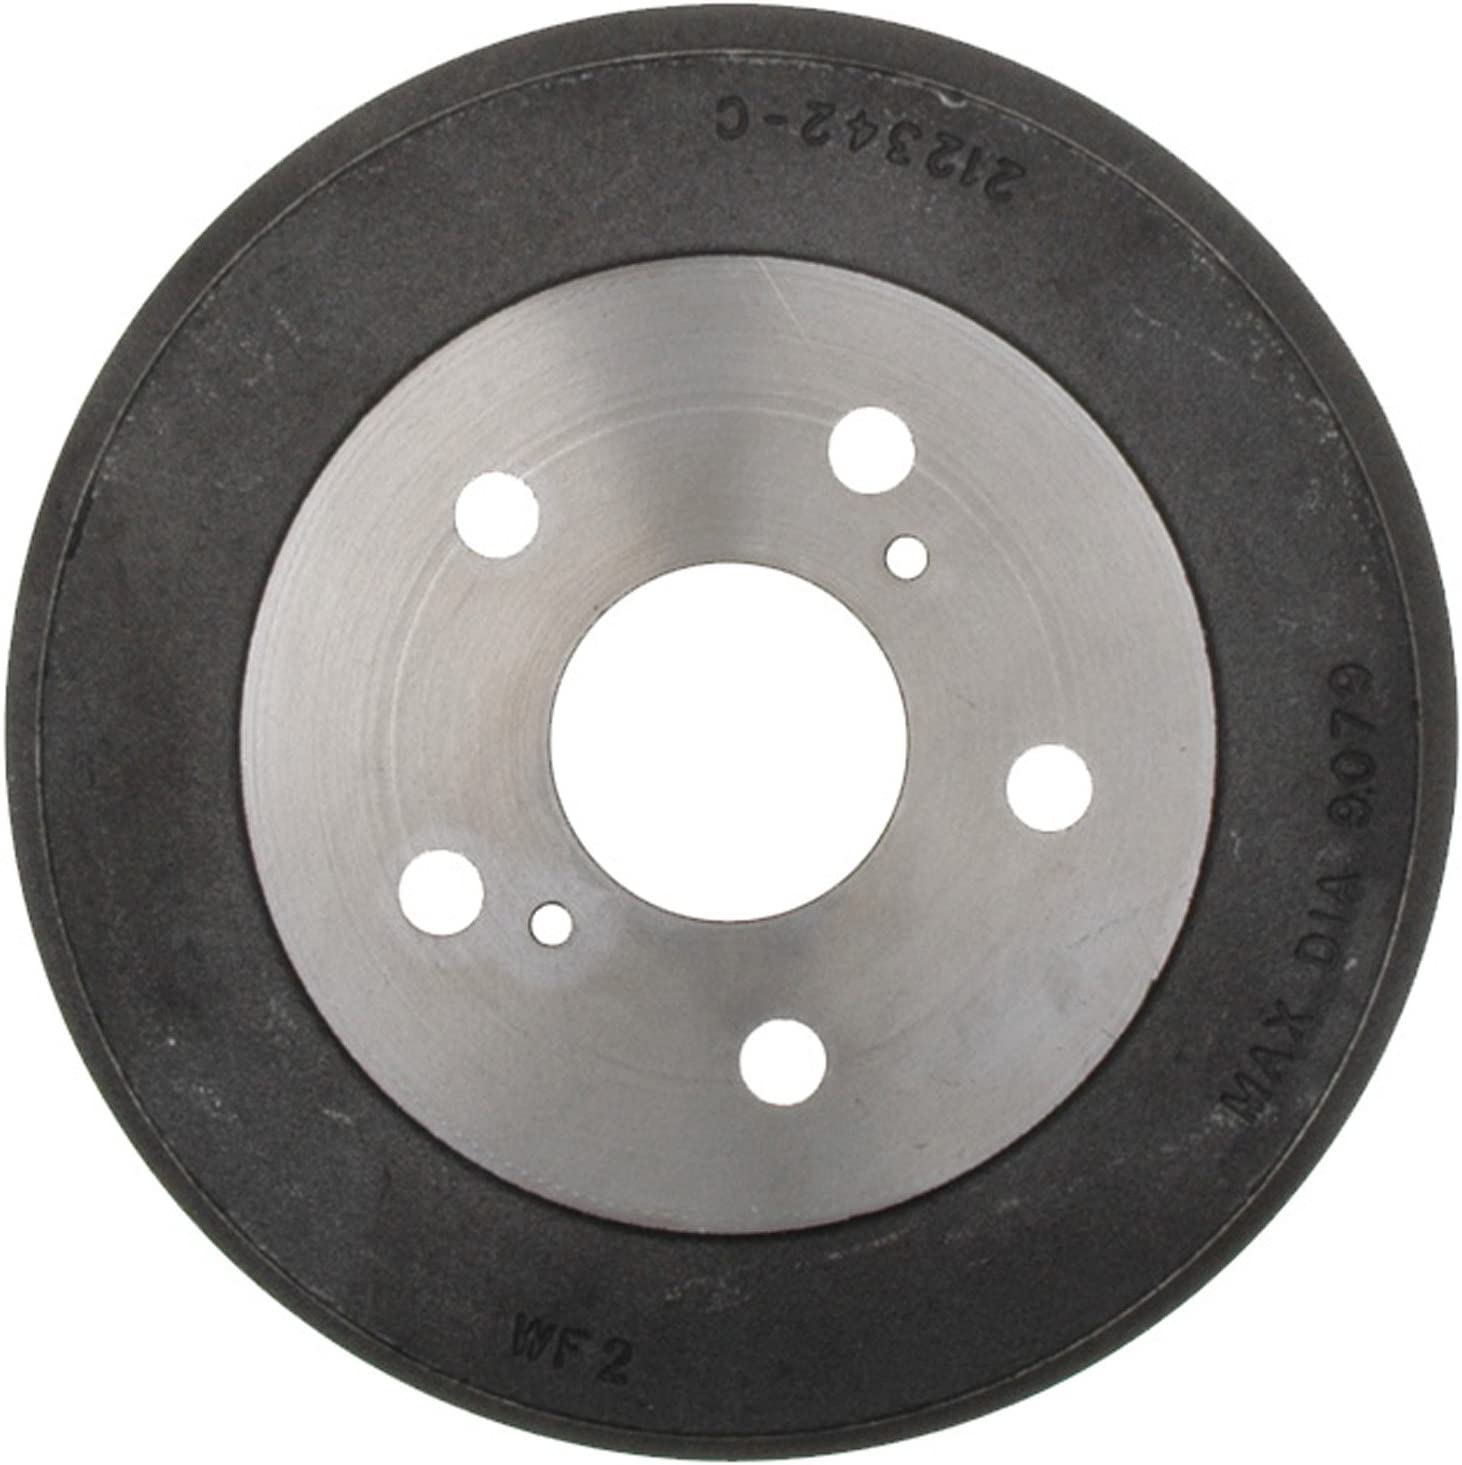 ACDelco 18B274 Professional Rear Brake Drum Assembly